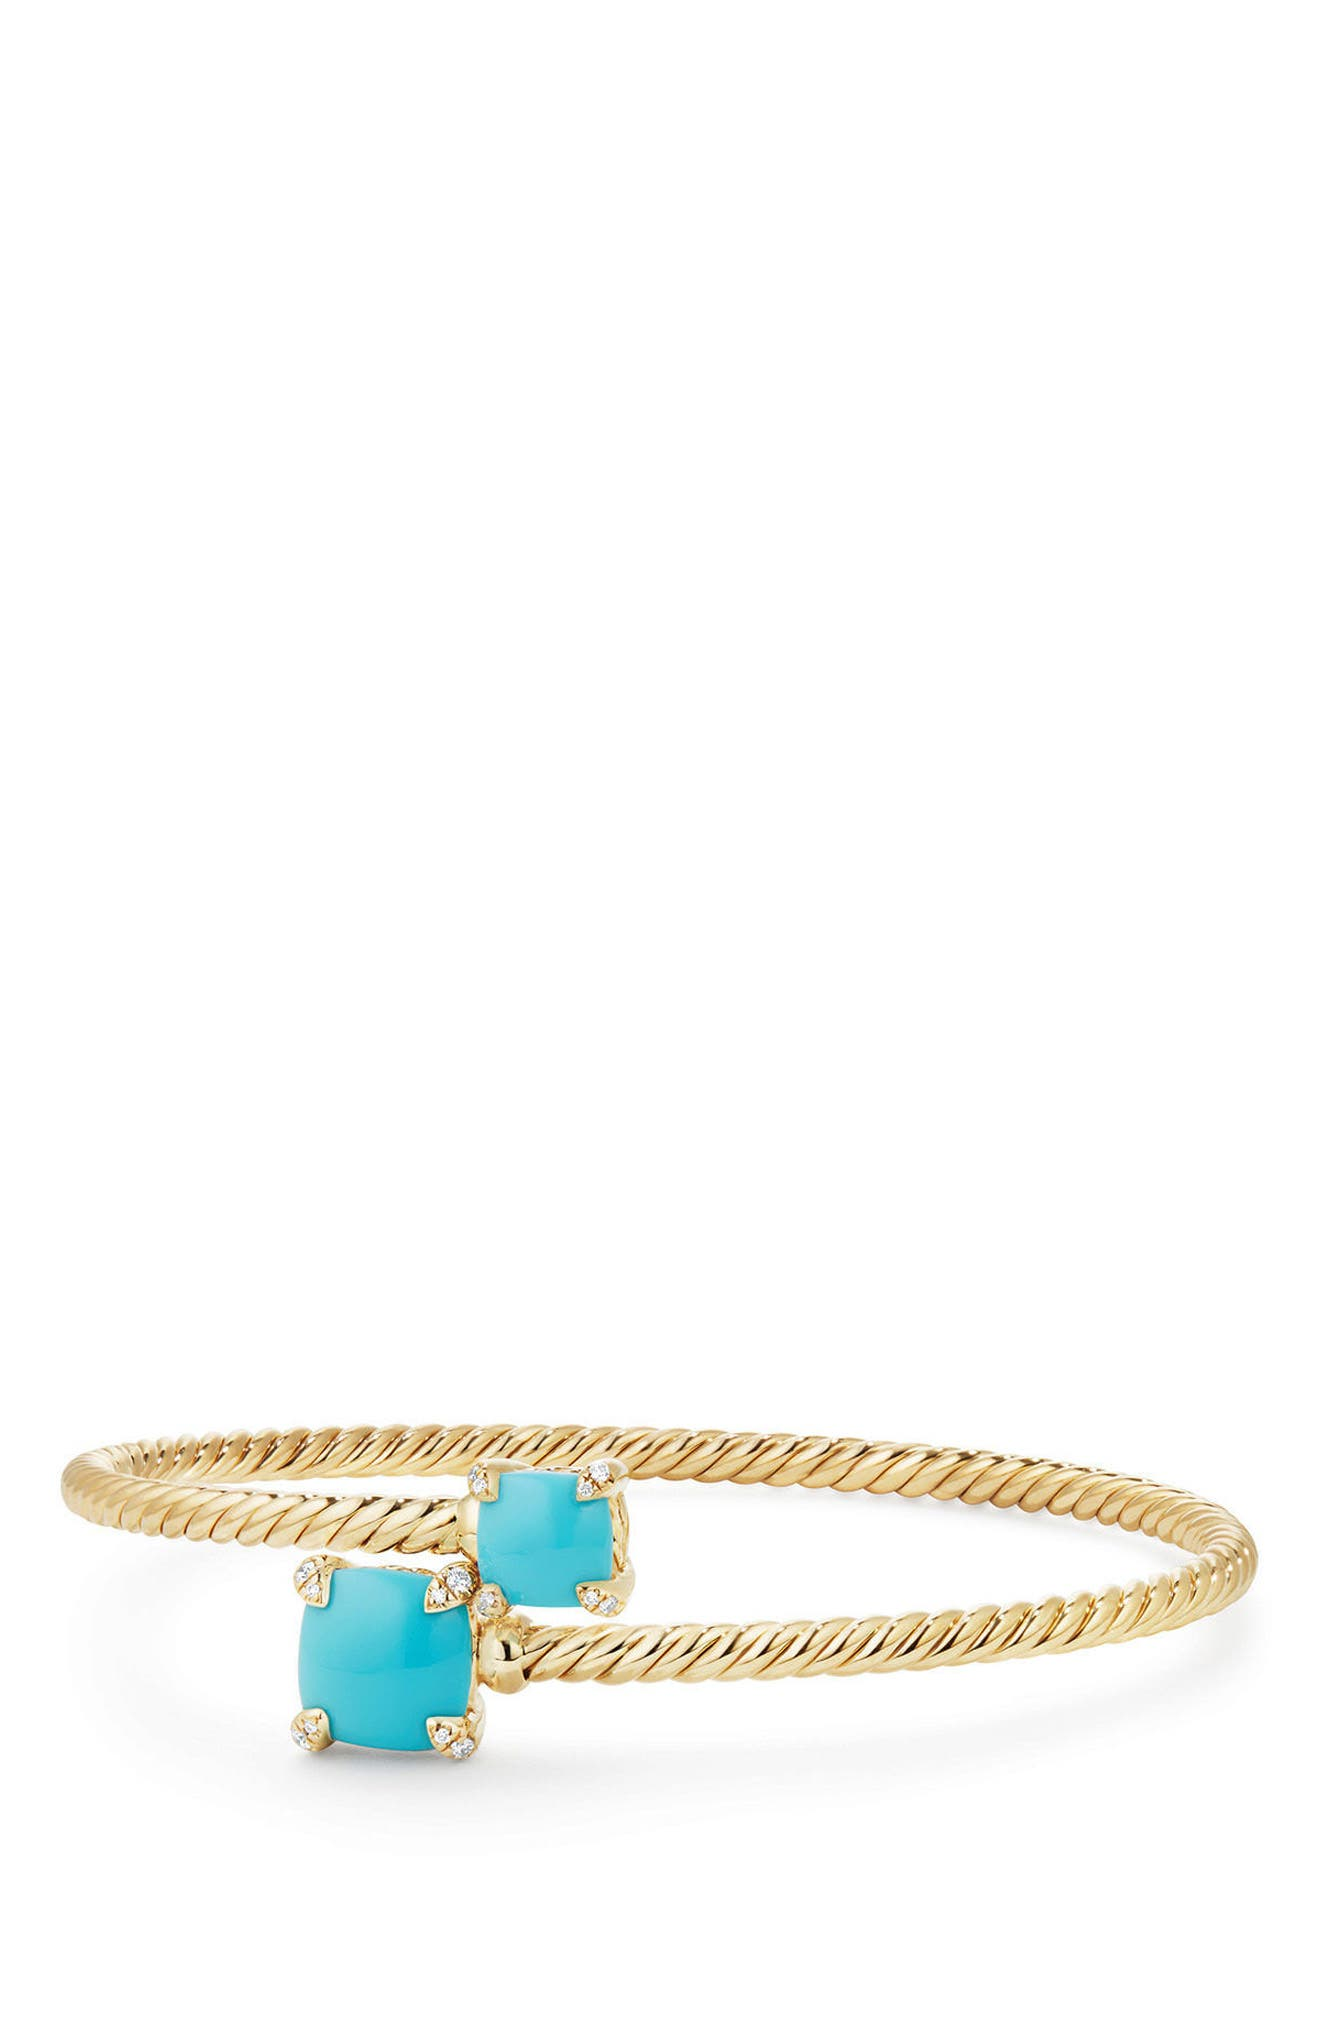 Alternate Image 1 Selected - David Yurman Châtelaine Bypass Bracelet with Semiprecious Stone & Diamonds in 18K Gold